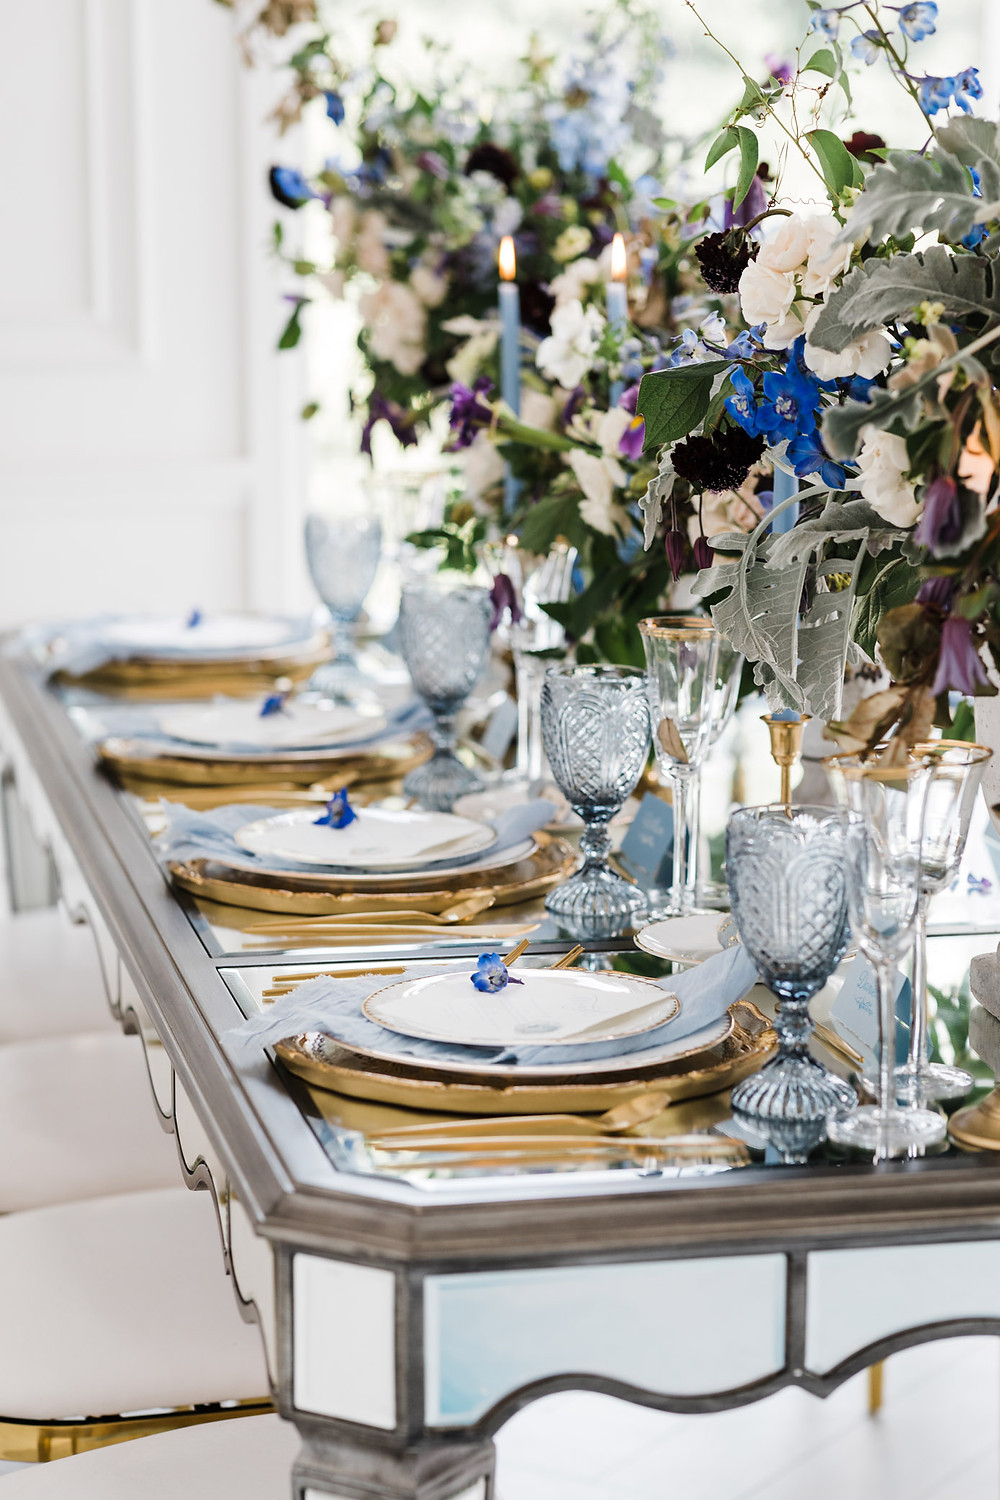 luxury toronto wedding inspiration blue flower reception decor plates candles